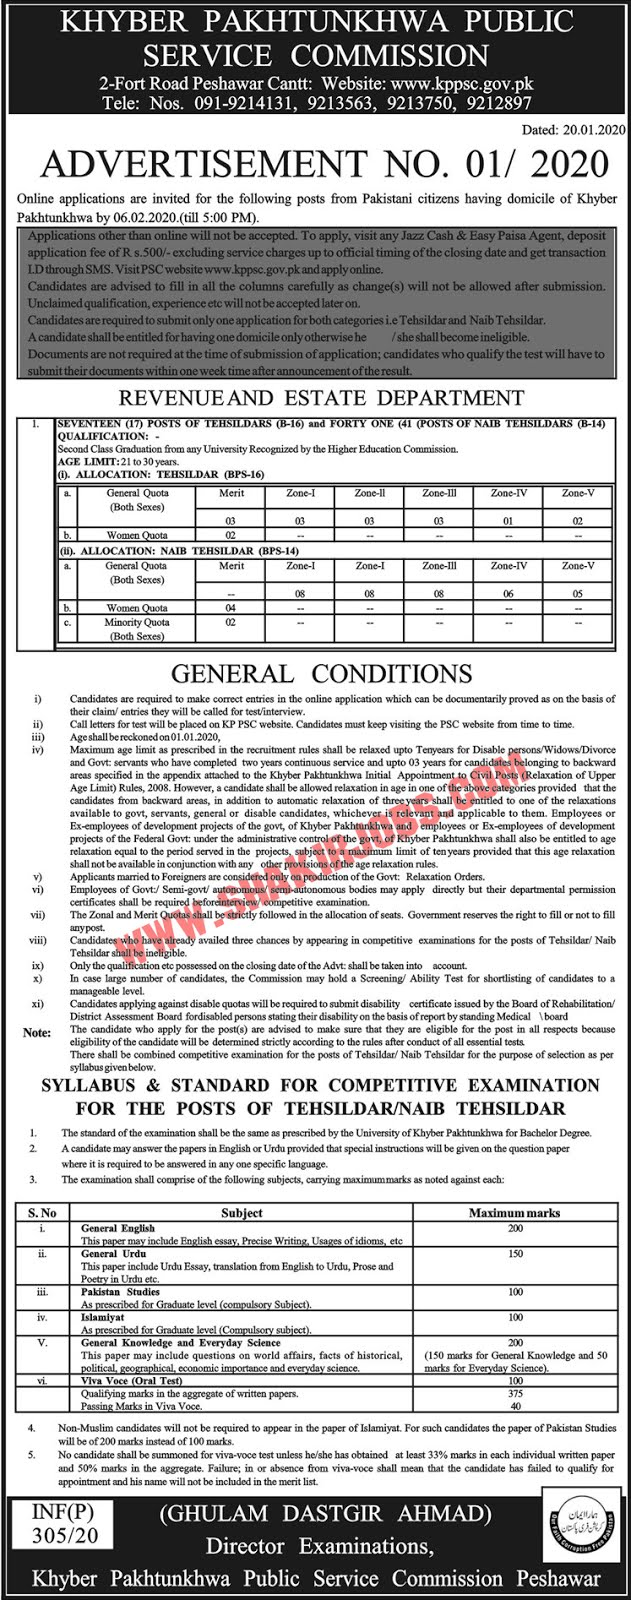 KPPSC Jobs 2020 KPK Public Service Commission Jobs Apply Online